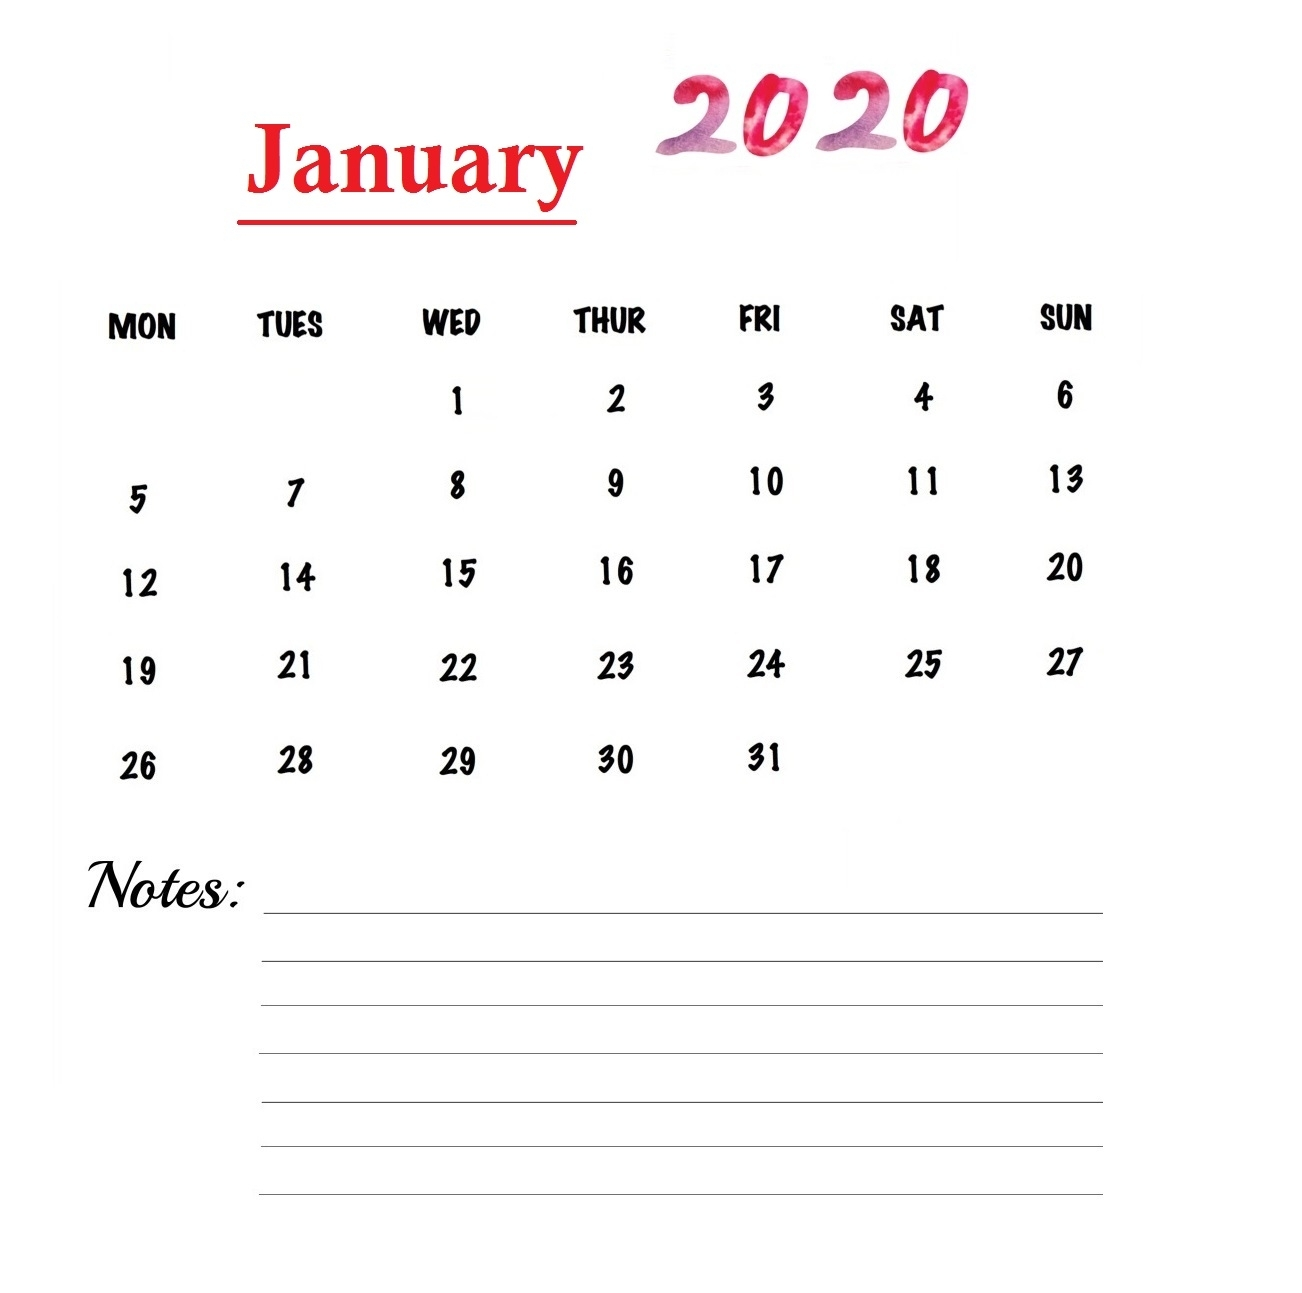 Weekly Calendar January 2020 Printable With Events